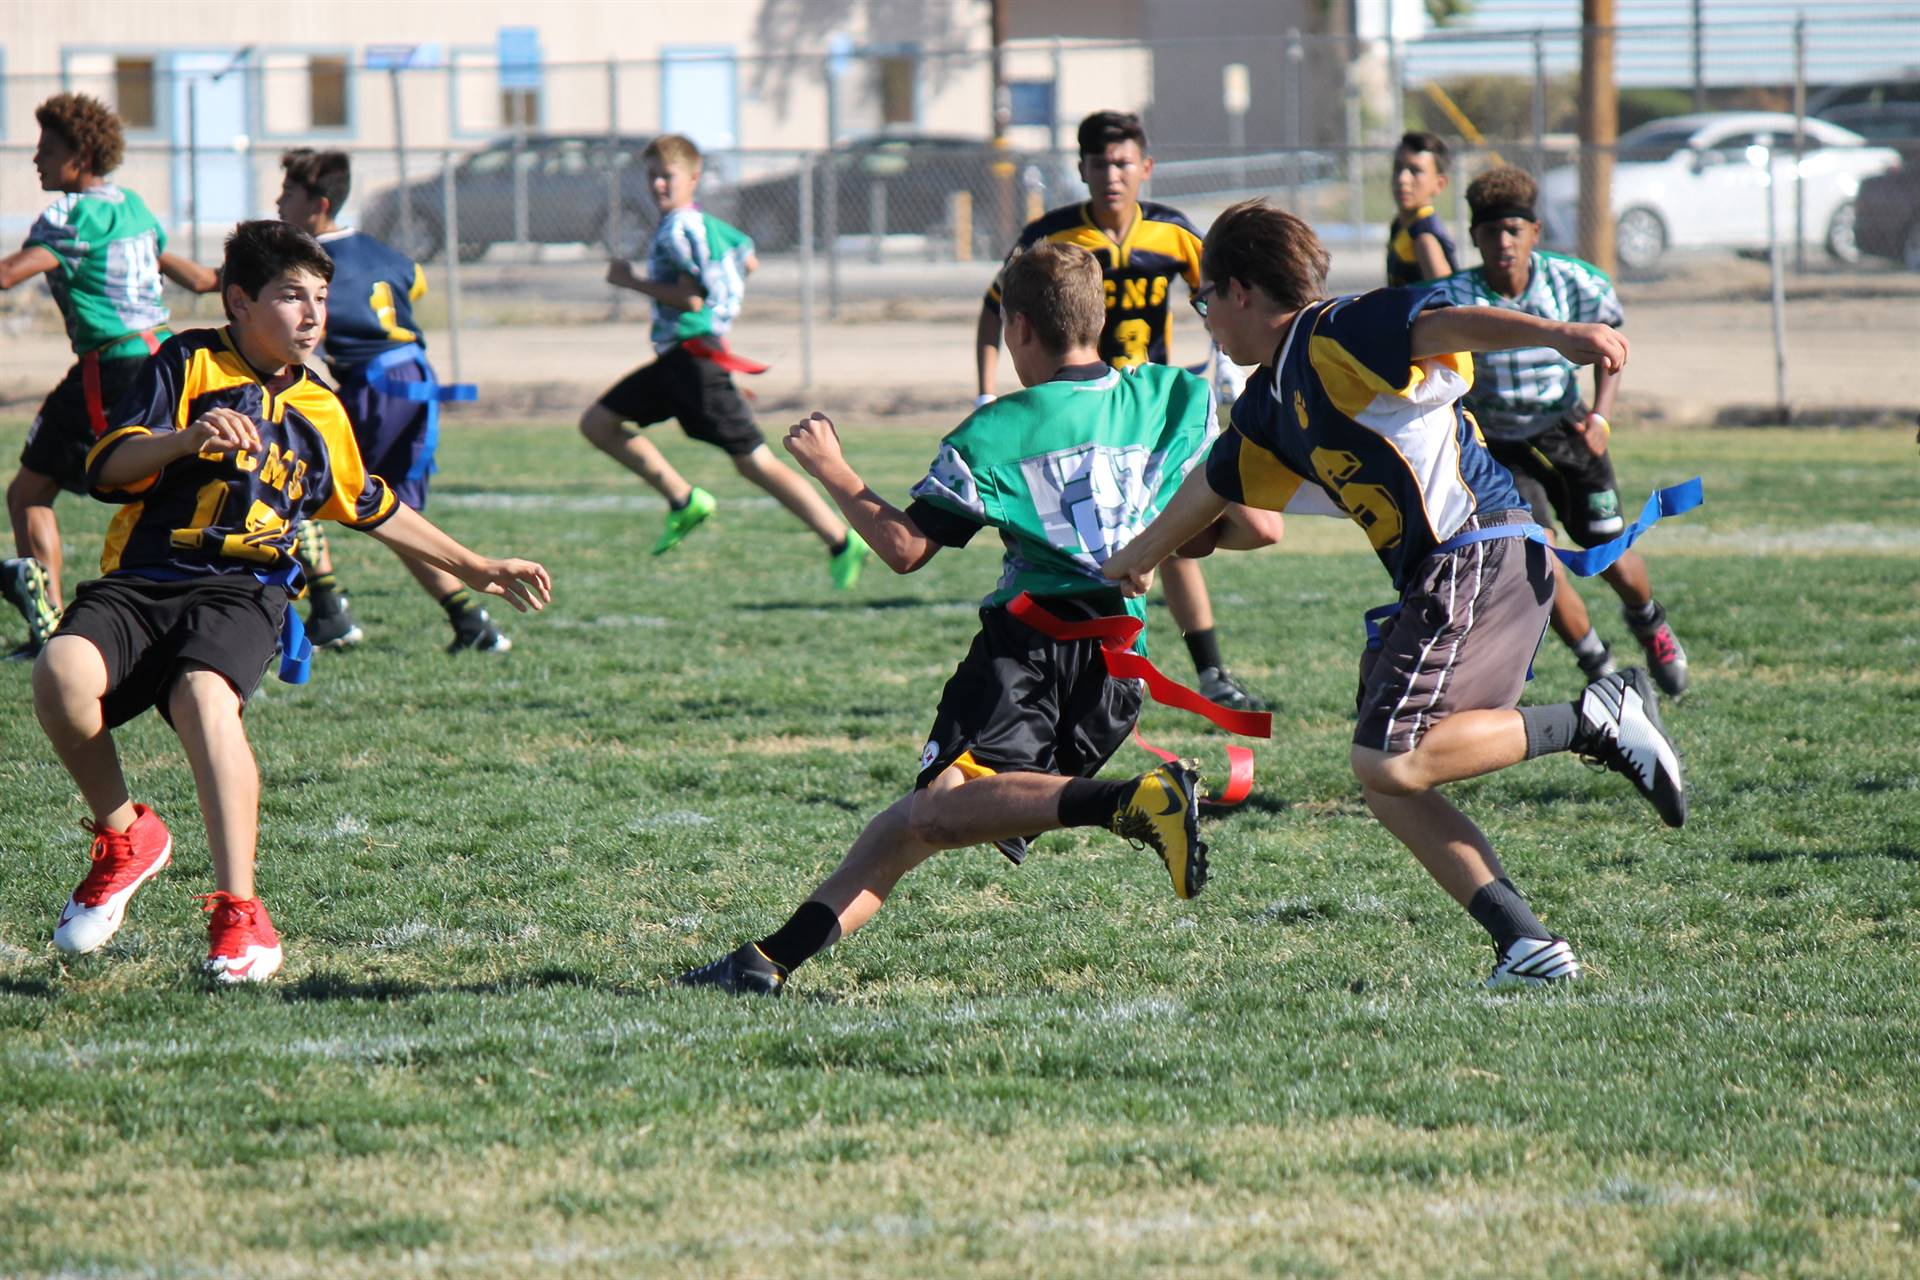 Picture of student running